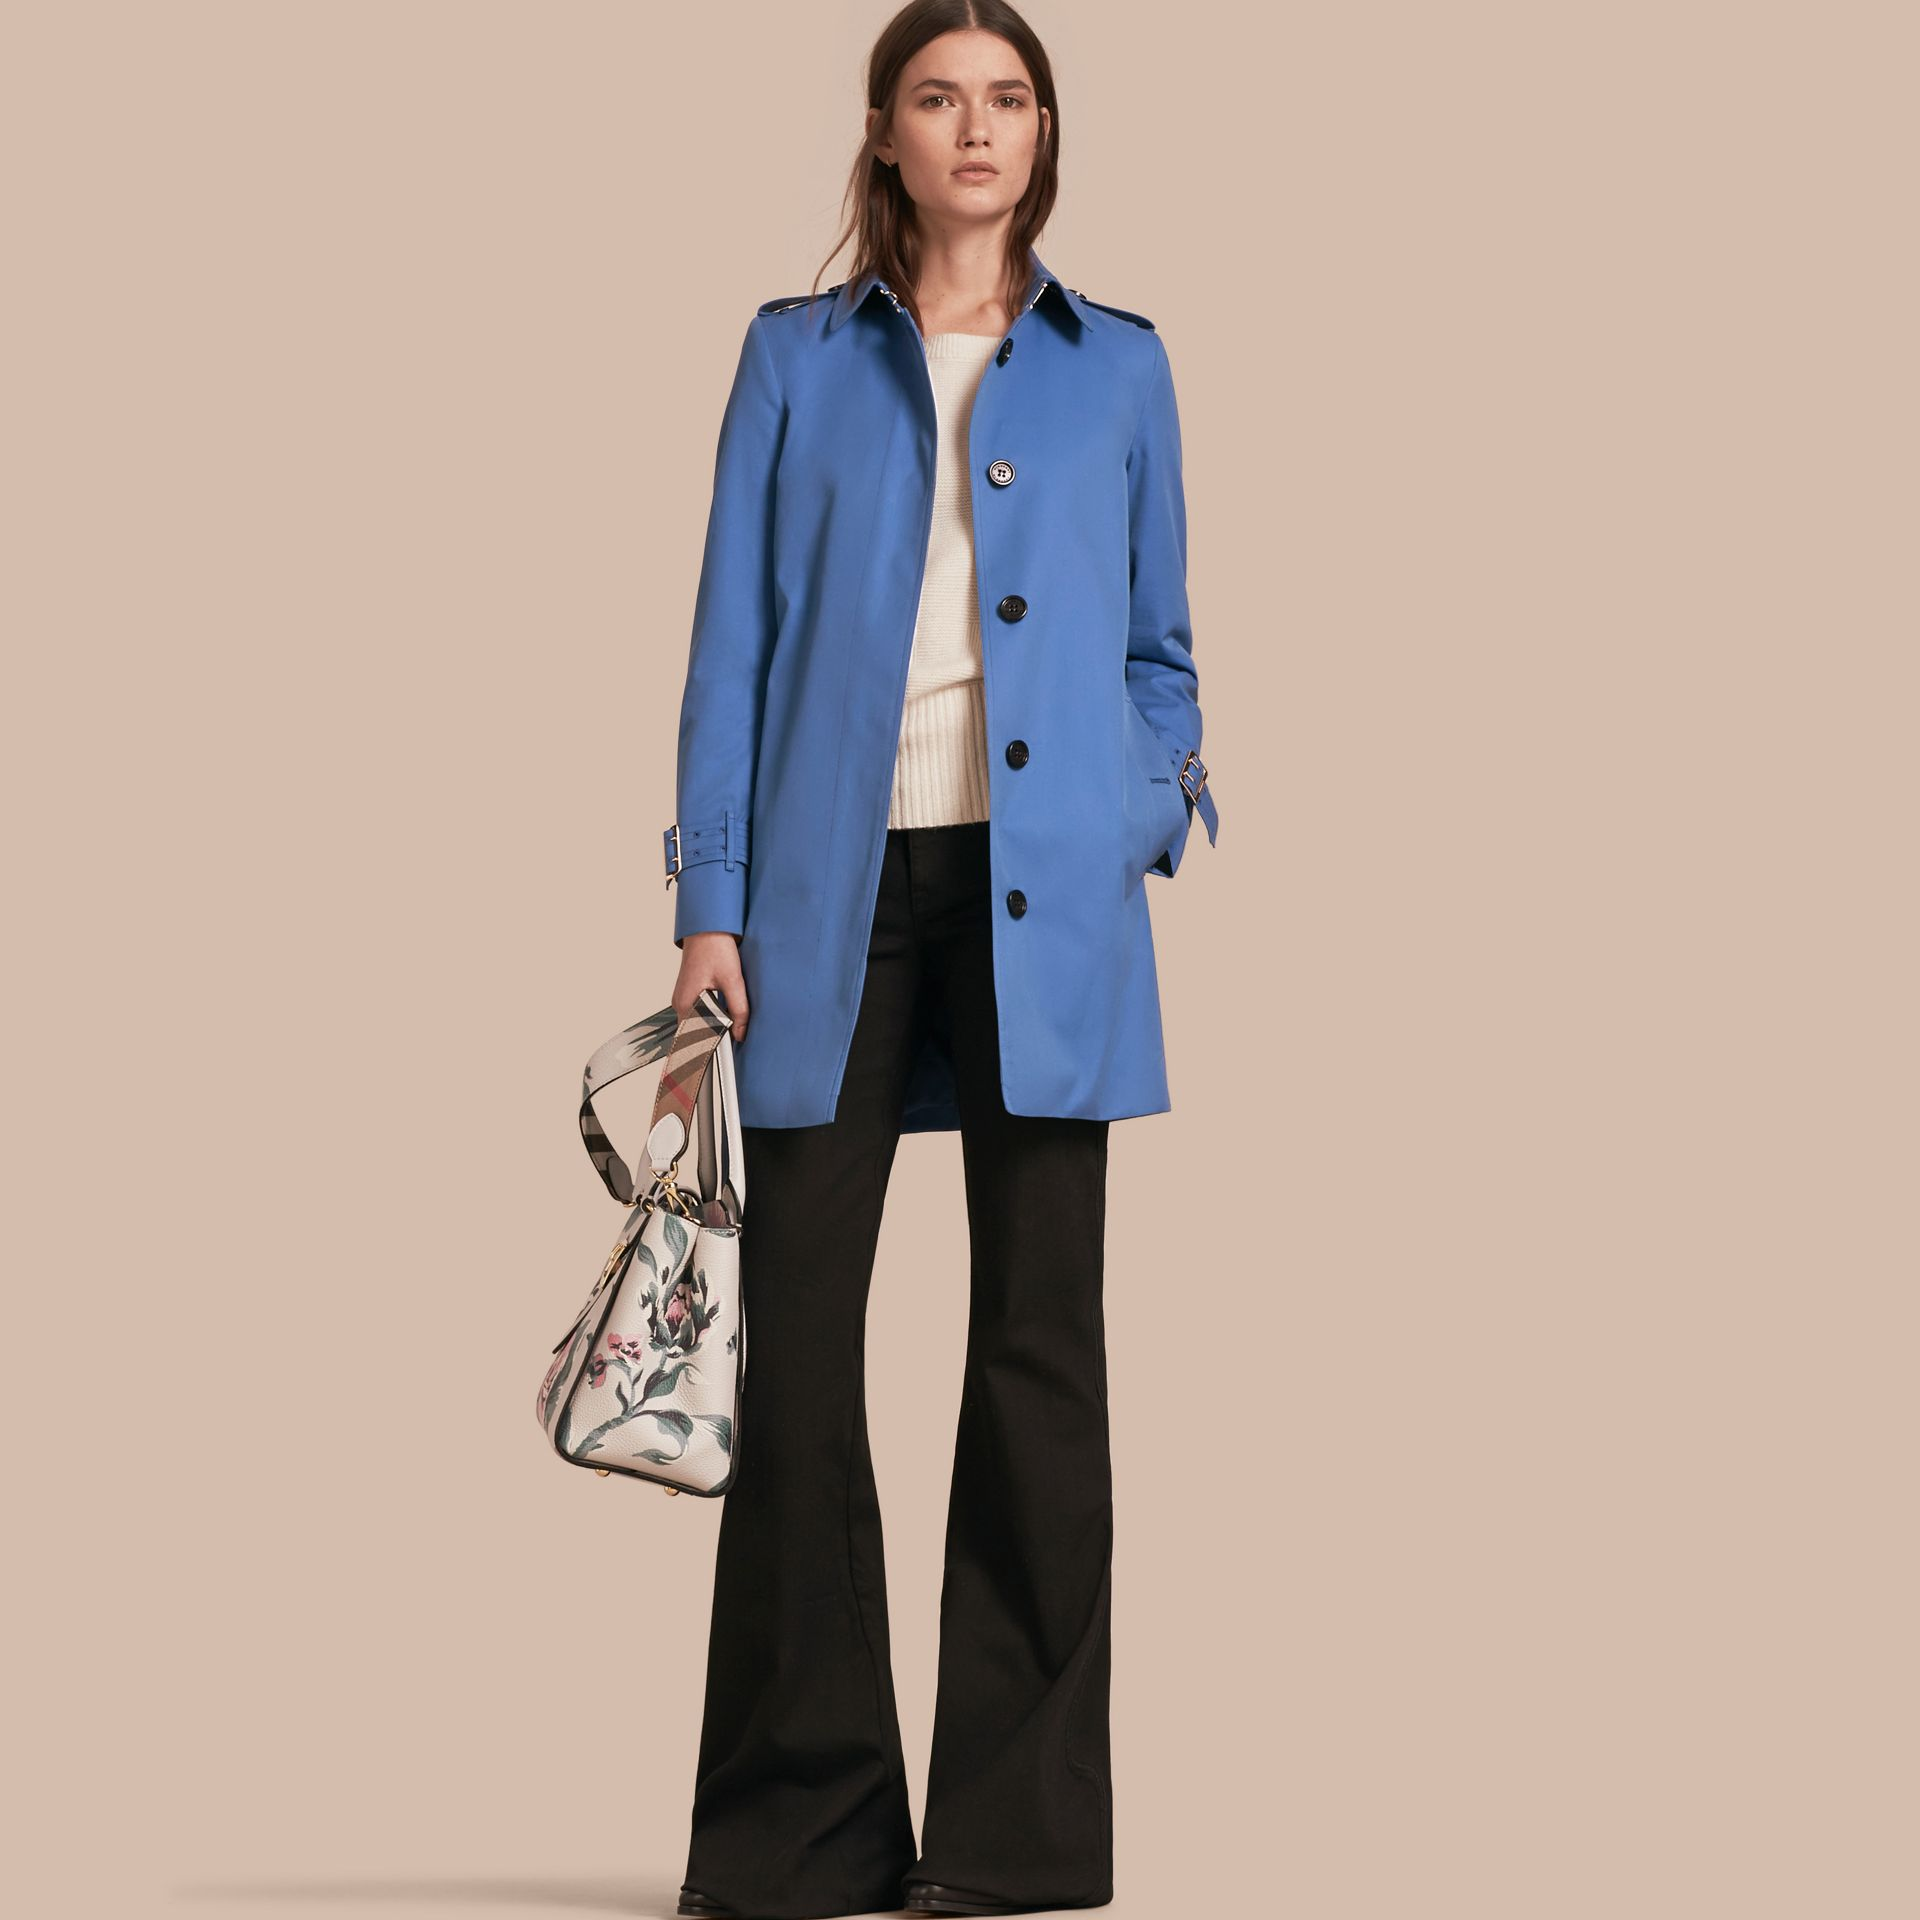 Bright steel blue Single-breasted Trench Coat with Metal Buckle Detail Bright Steel Blue - gallery image 1